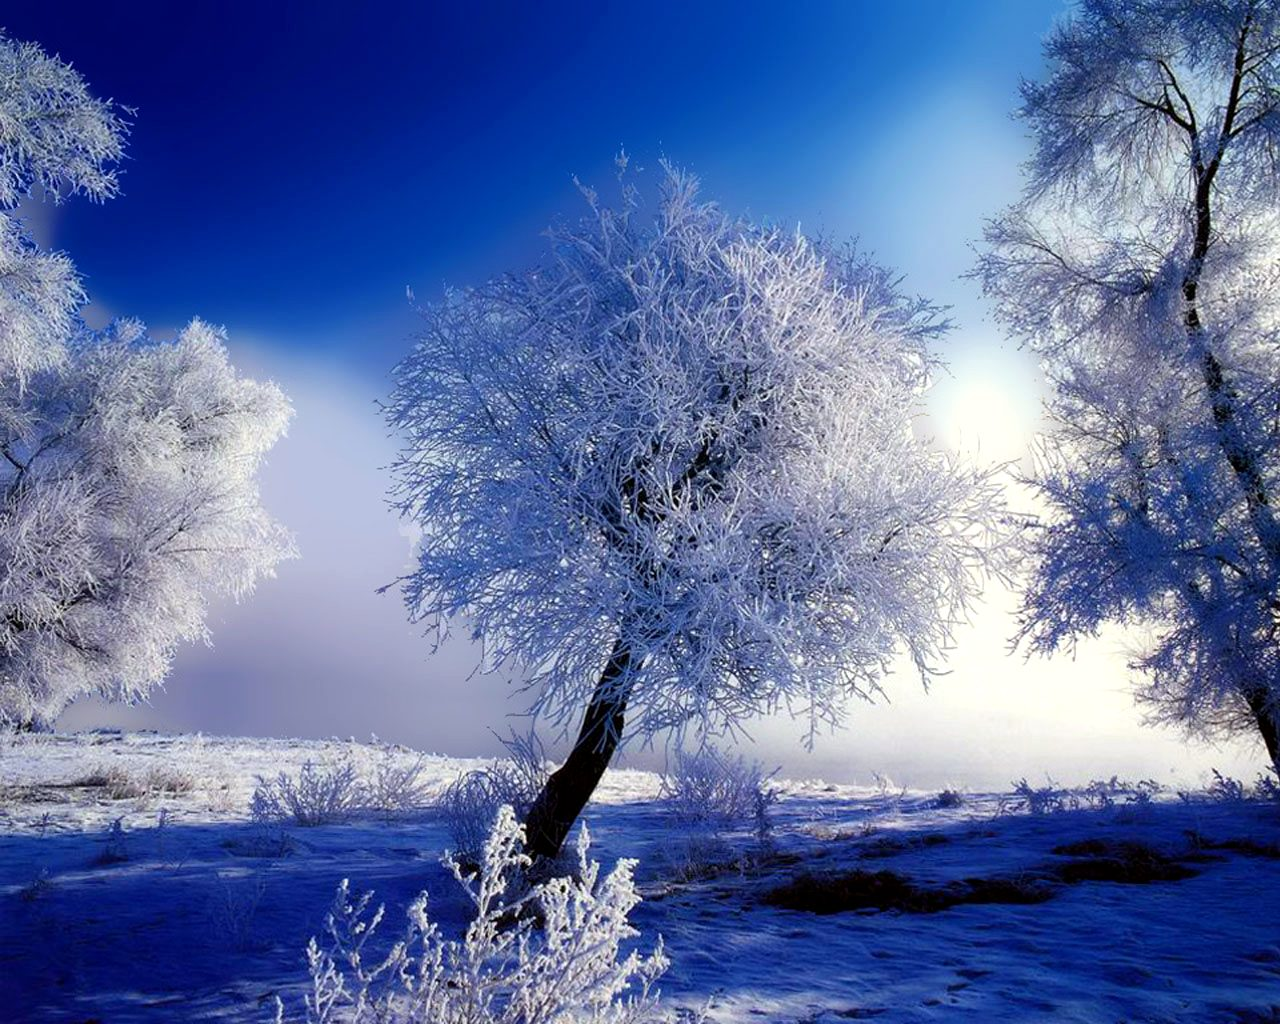 Winter images Wonderful Winter wallpaper photos 27867218 1280x1024